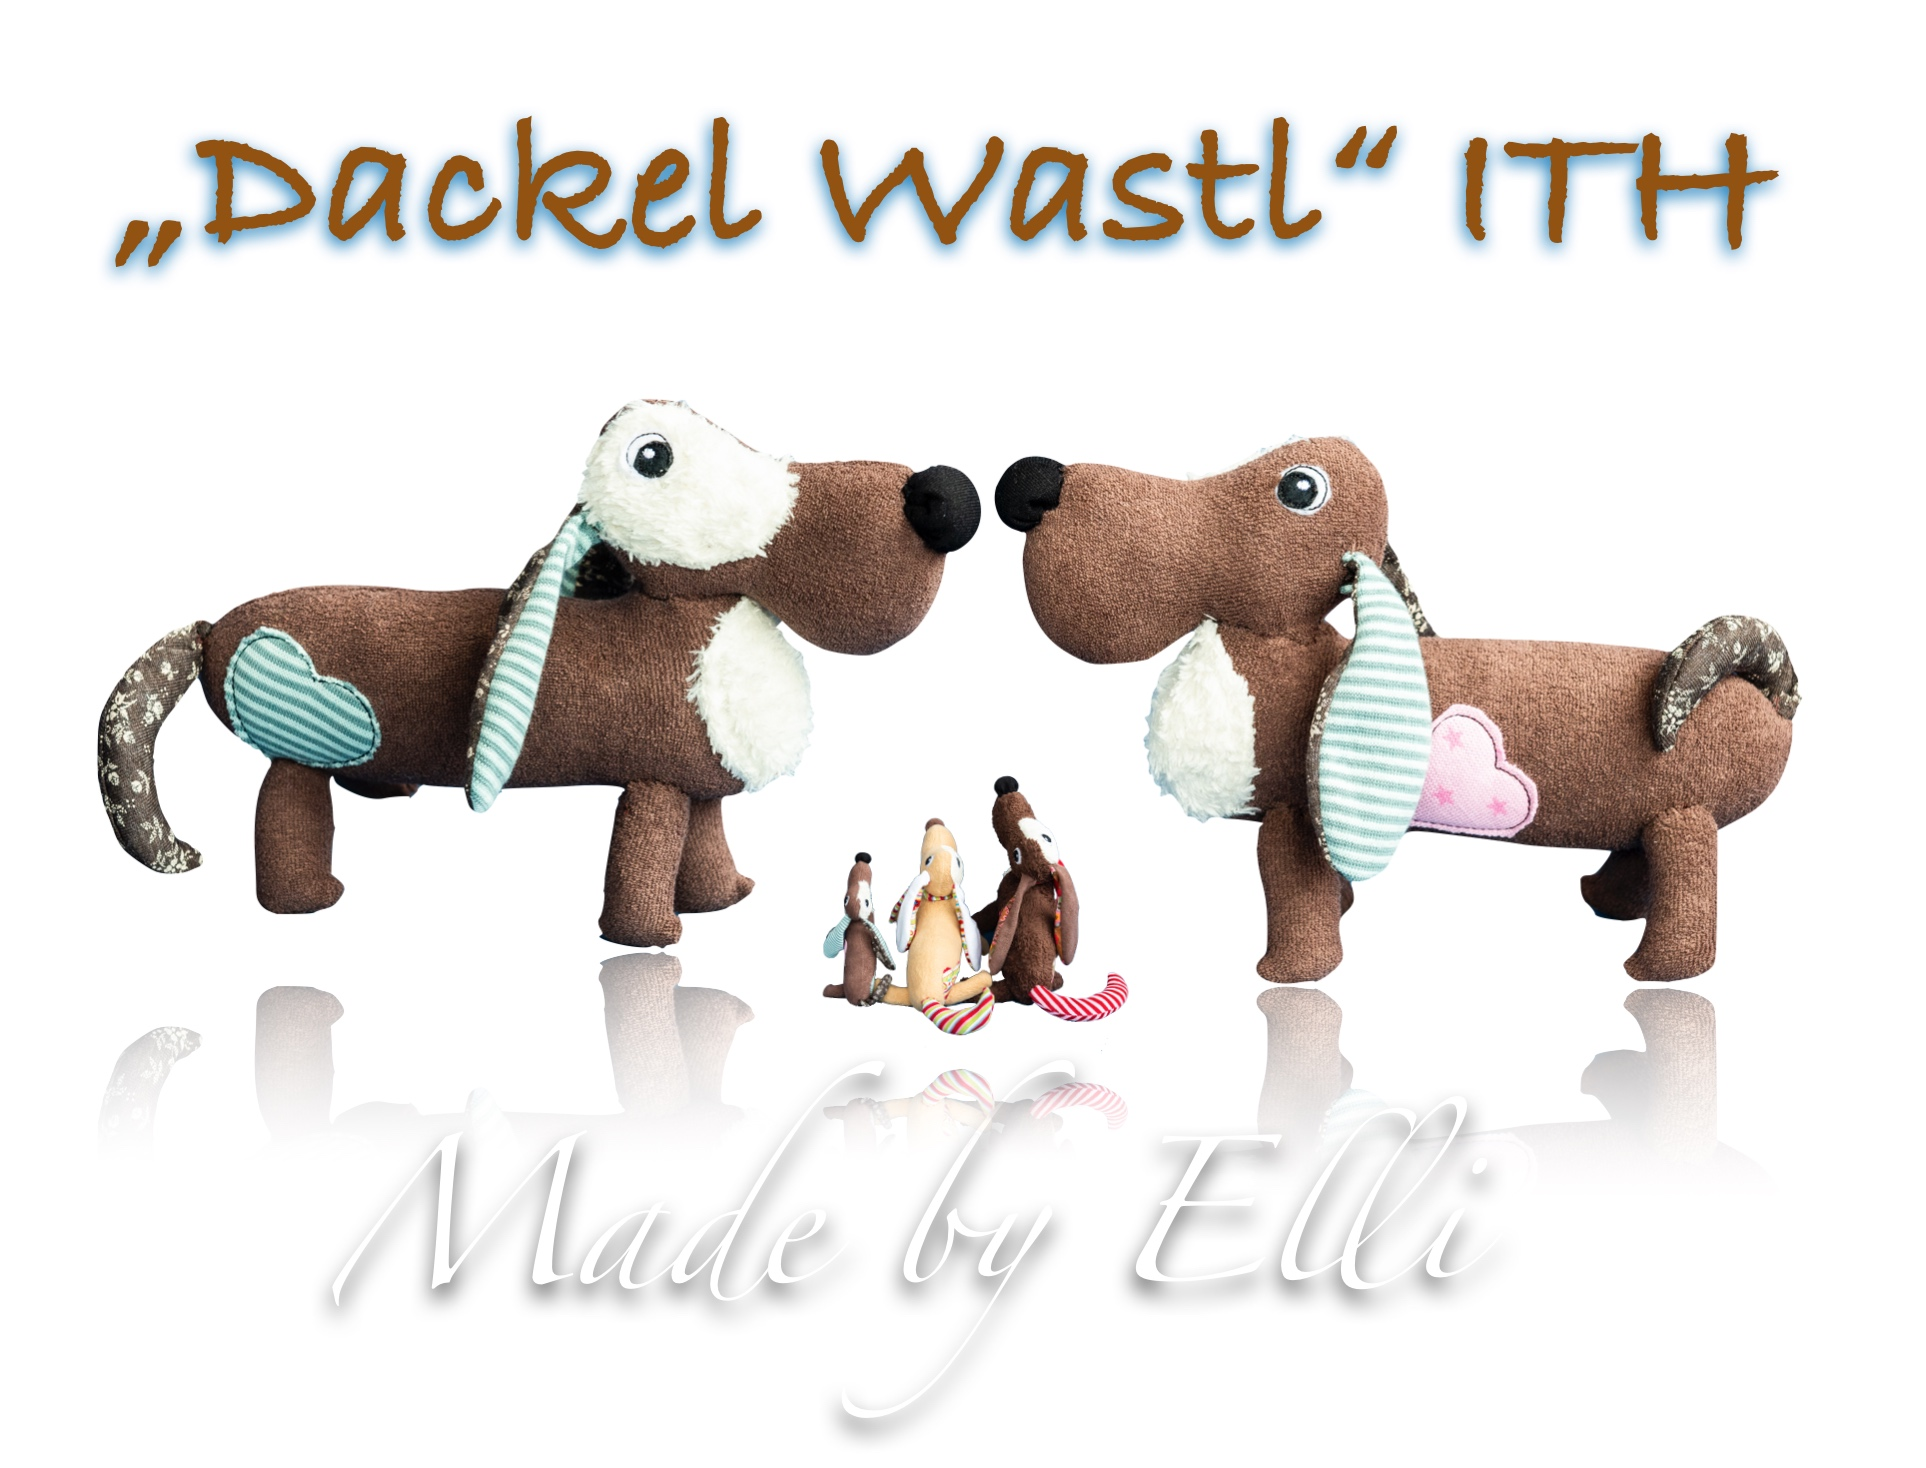 Dackel Wastl